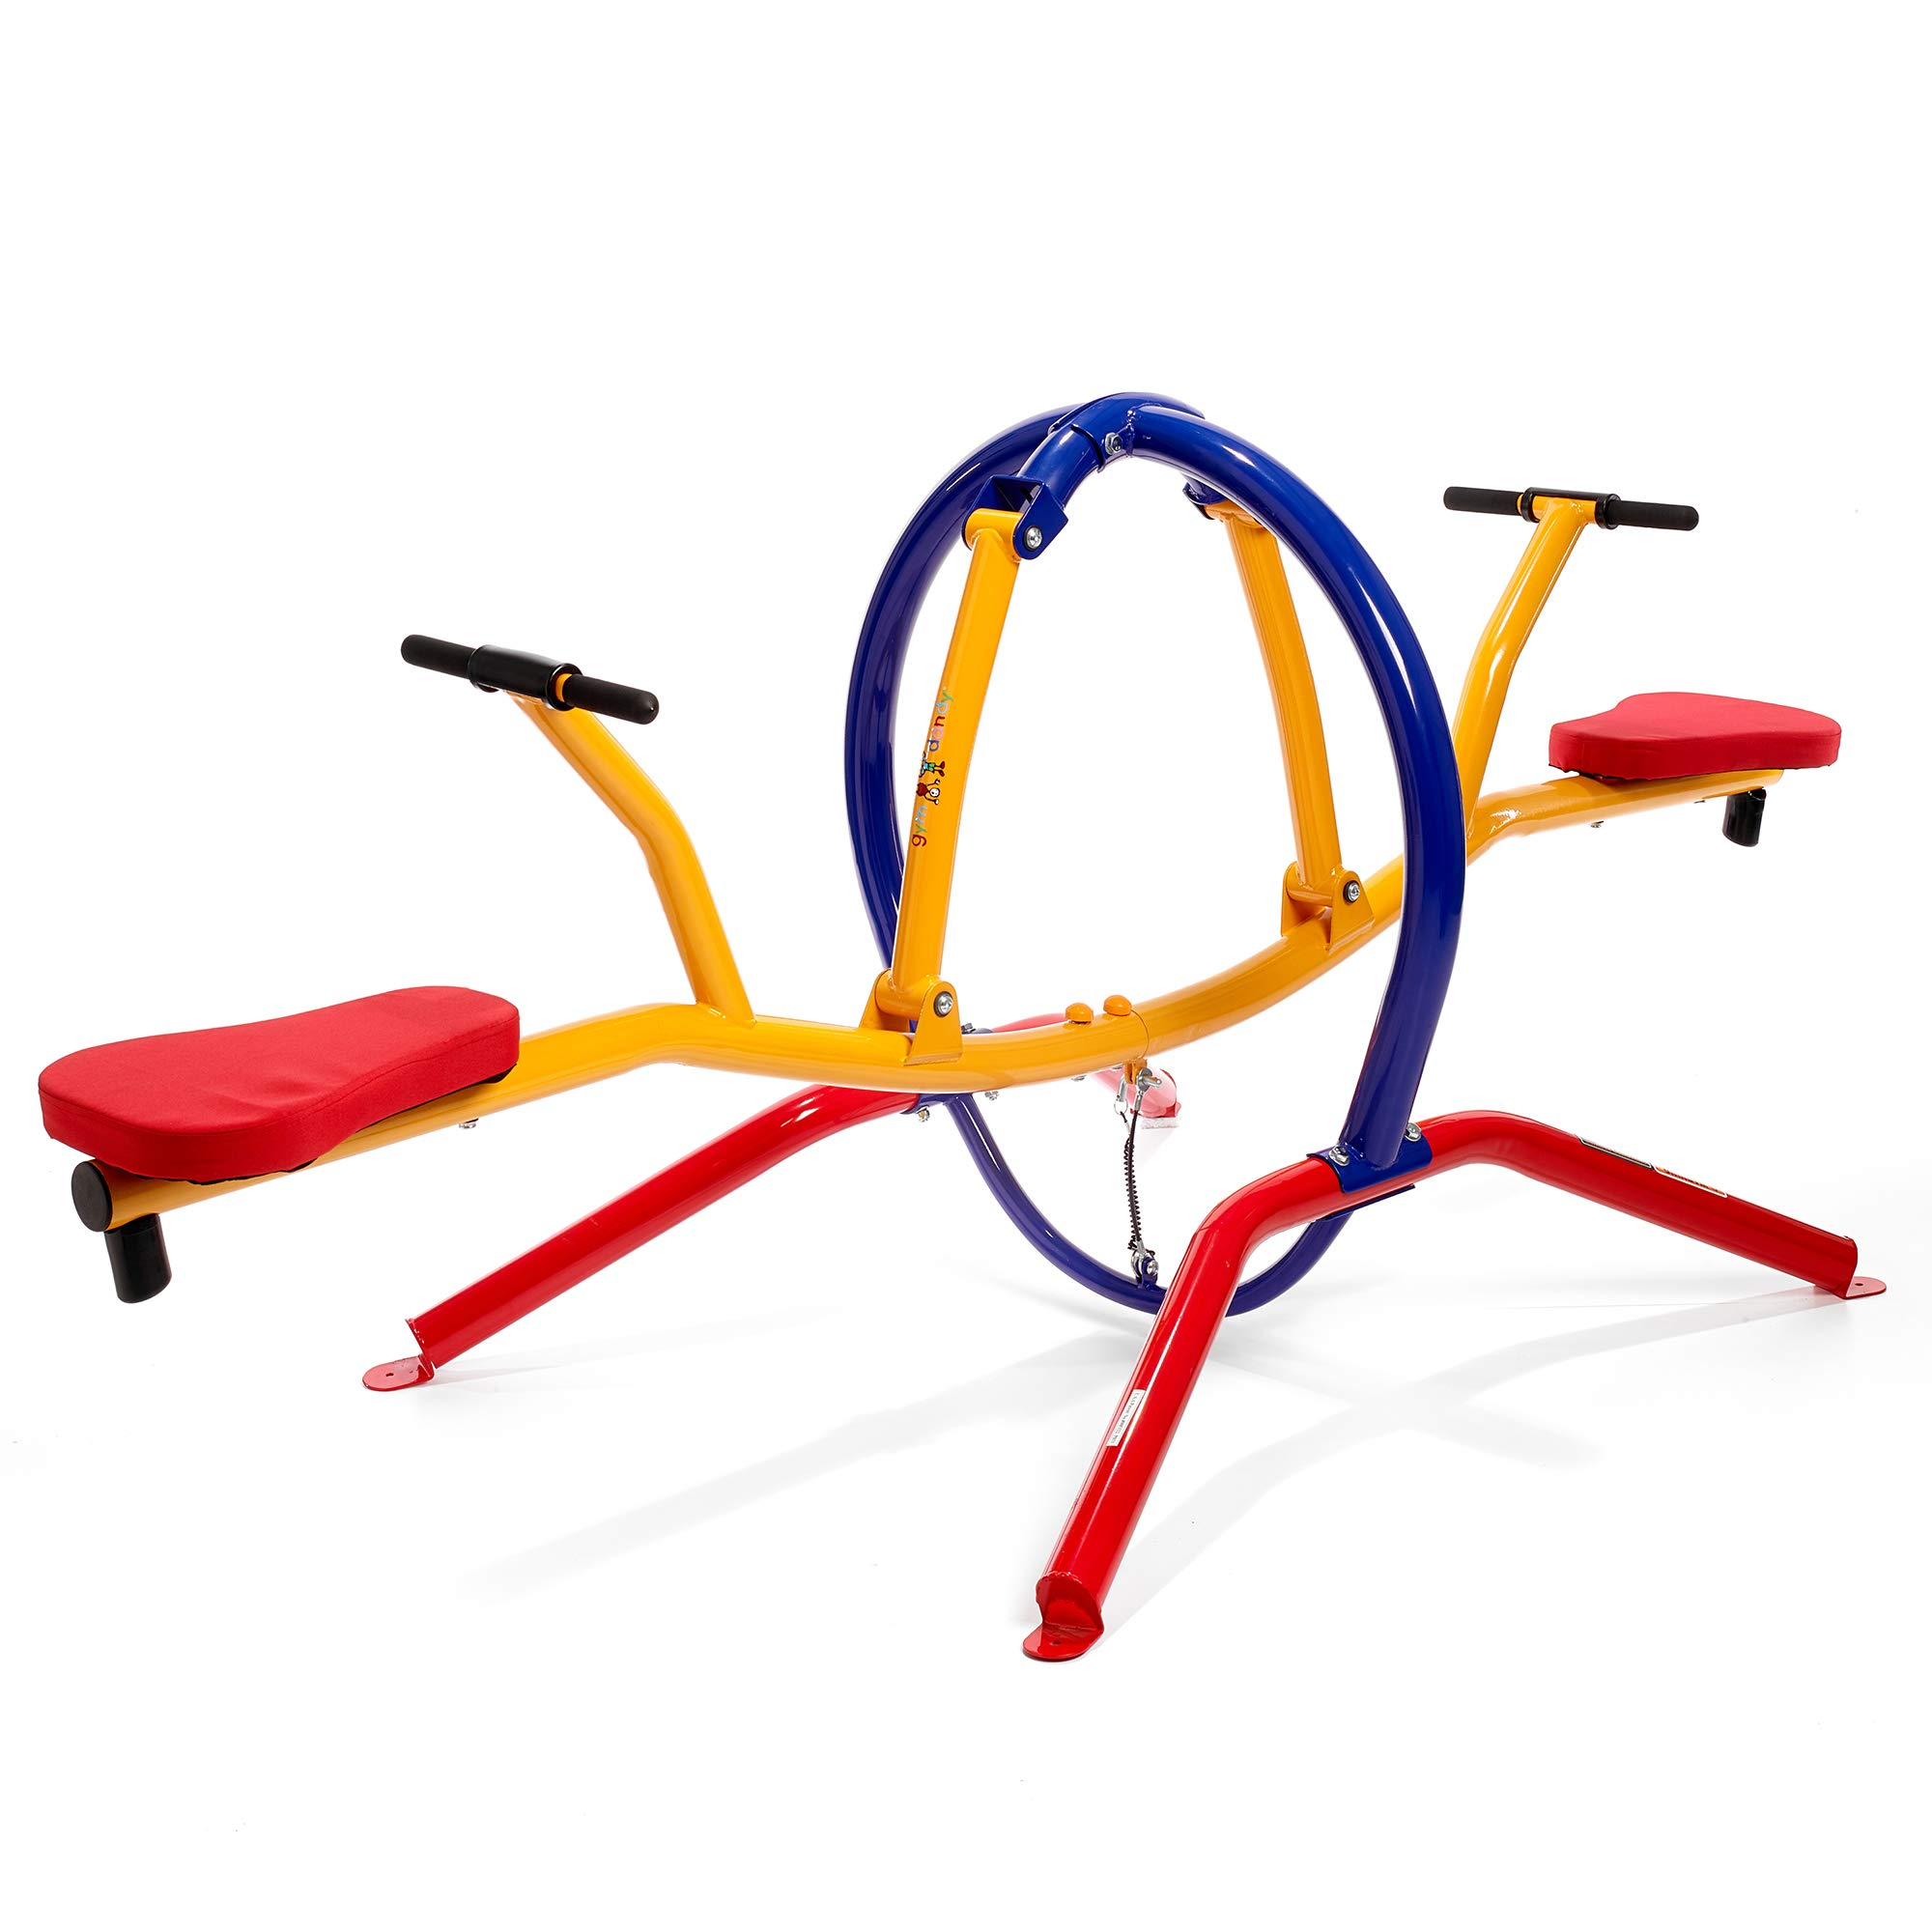 Gym Dandy Pendulum Teeter Totter Seesaw Set TT-320 by Gym Dandy